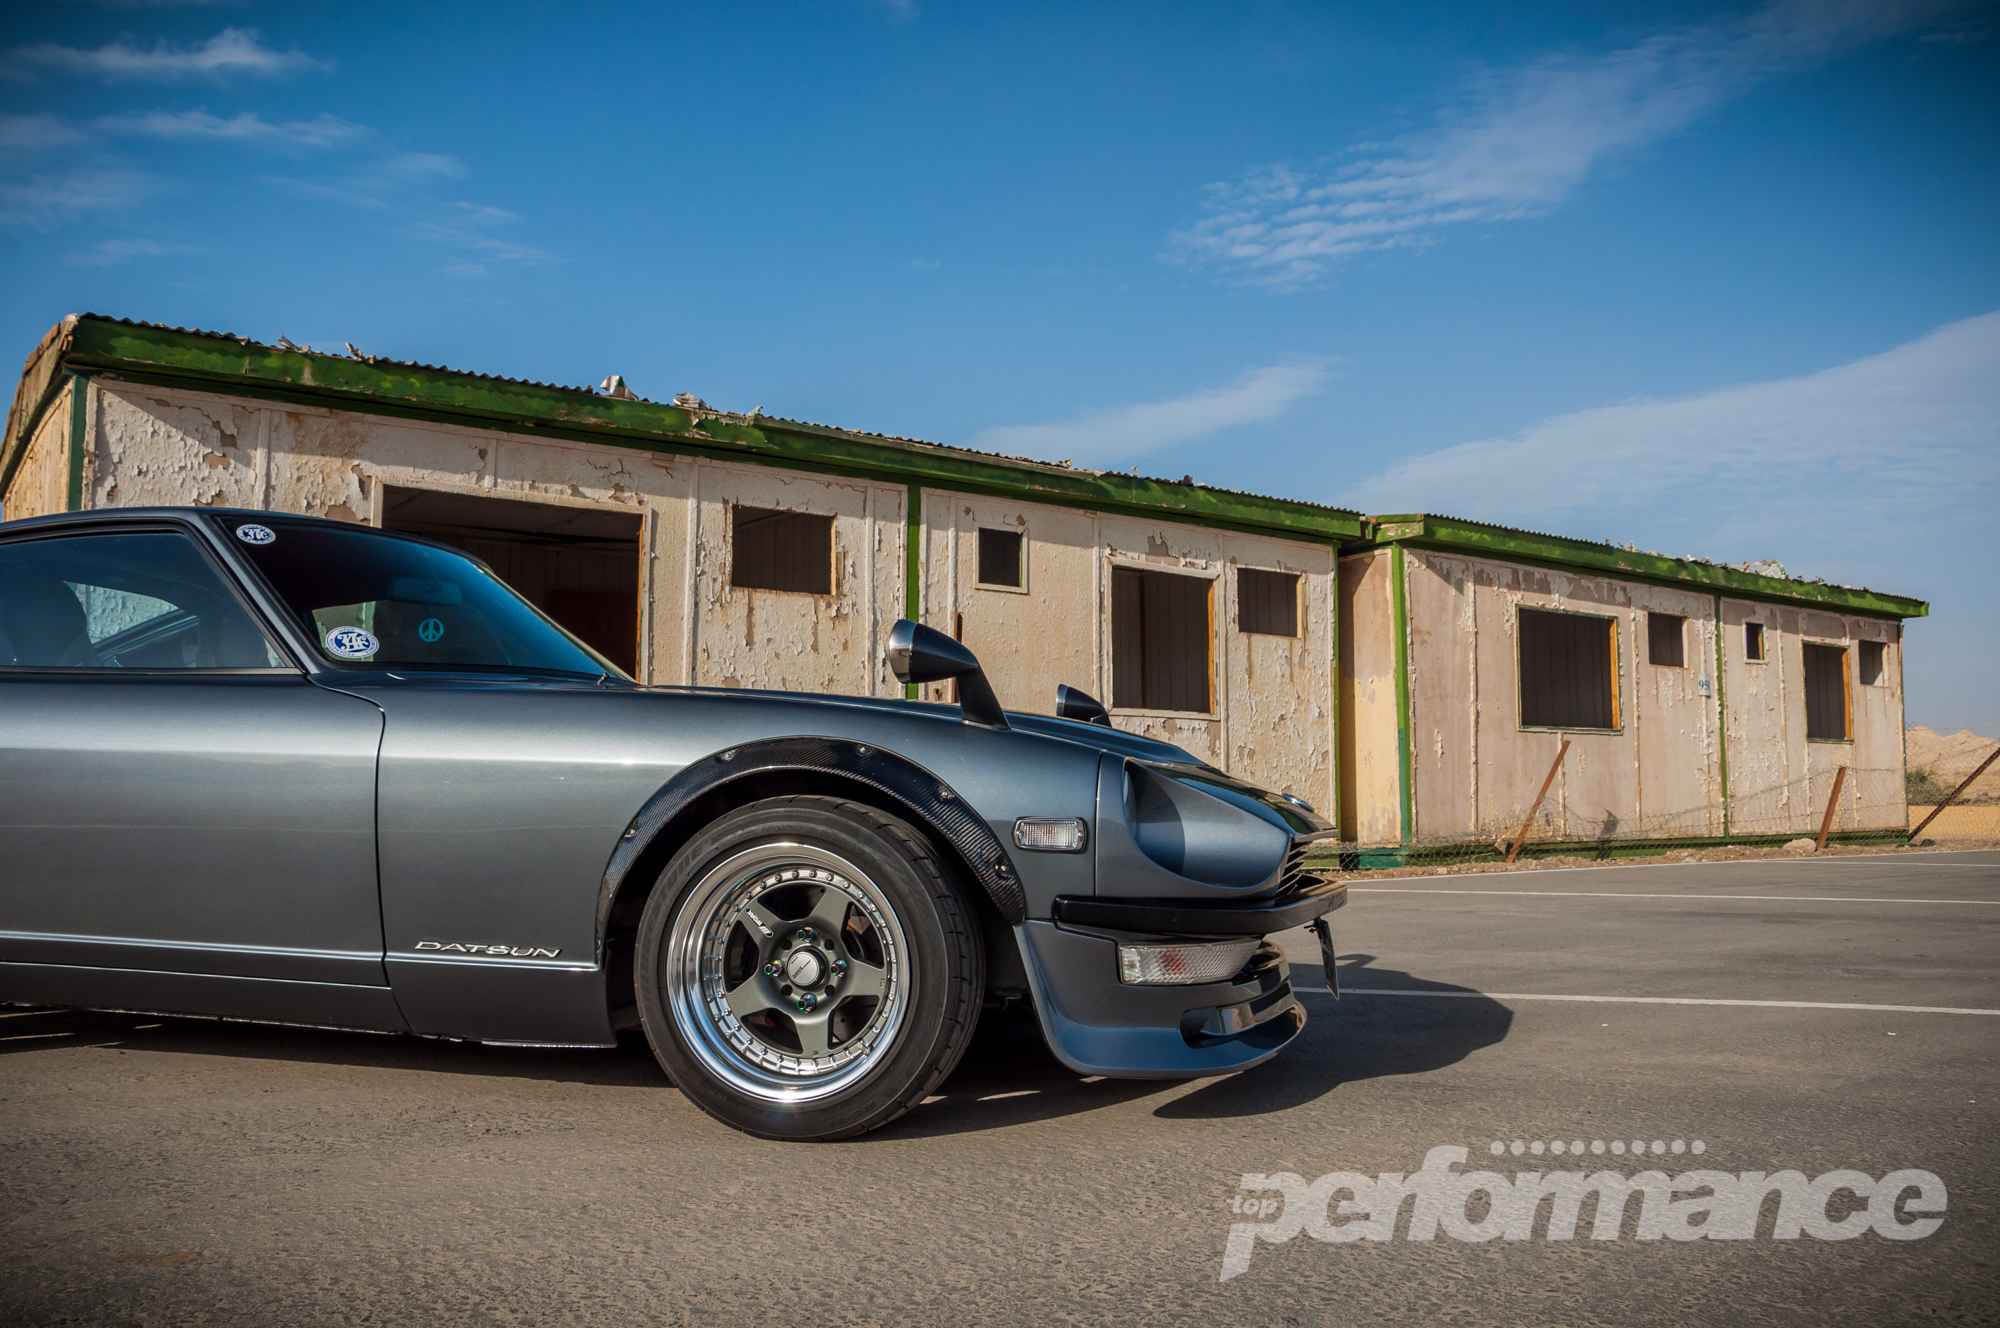 modified classic nissan fairlady z datsun 240z motoring middle east car news reviews and. Black Bedroom Furniture Sets. Home Design Ideas